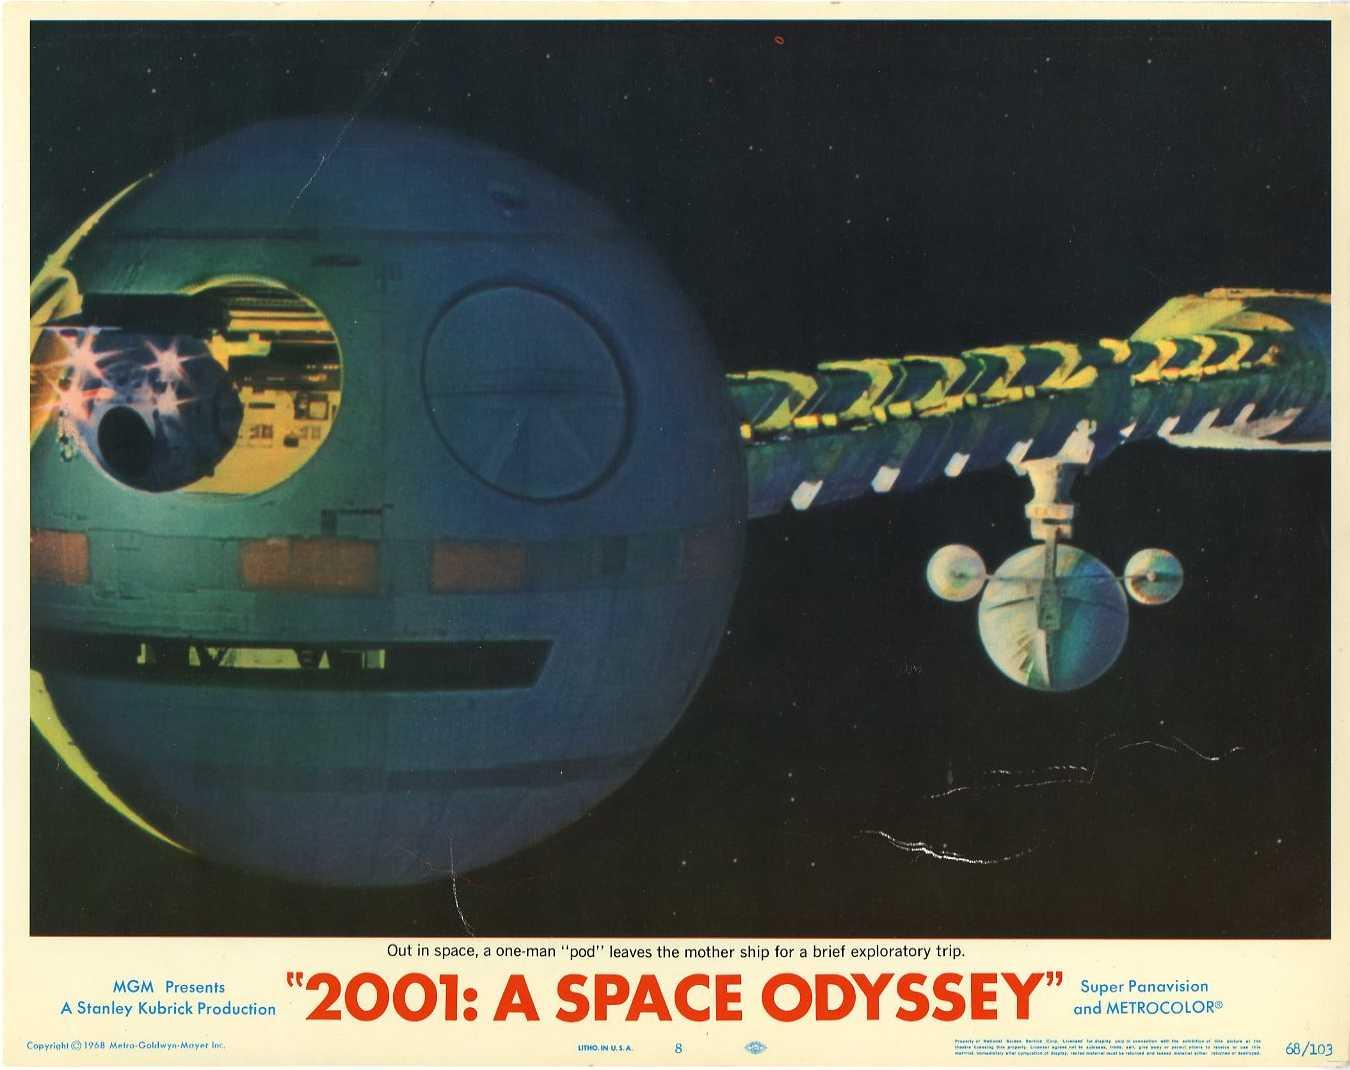 '2001: A Space Odyssey' movie